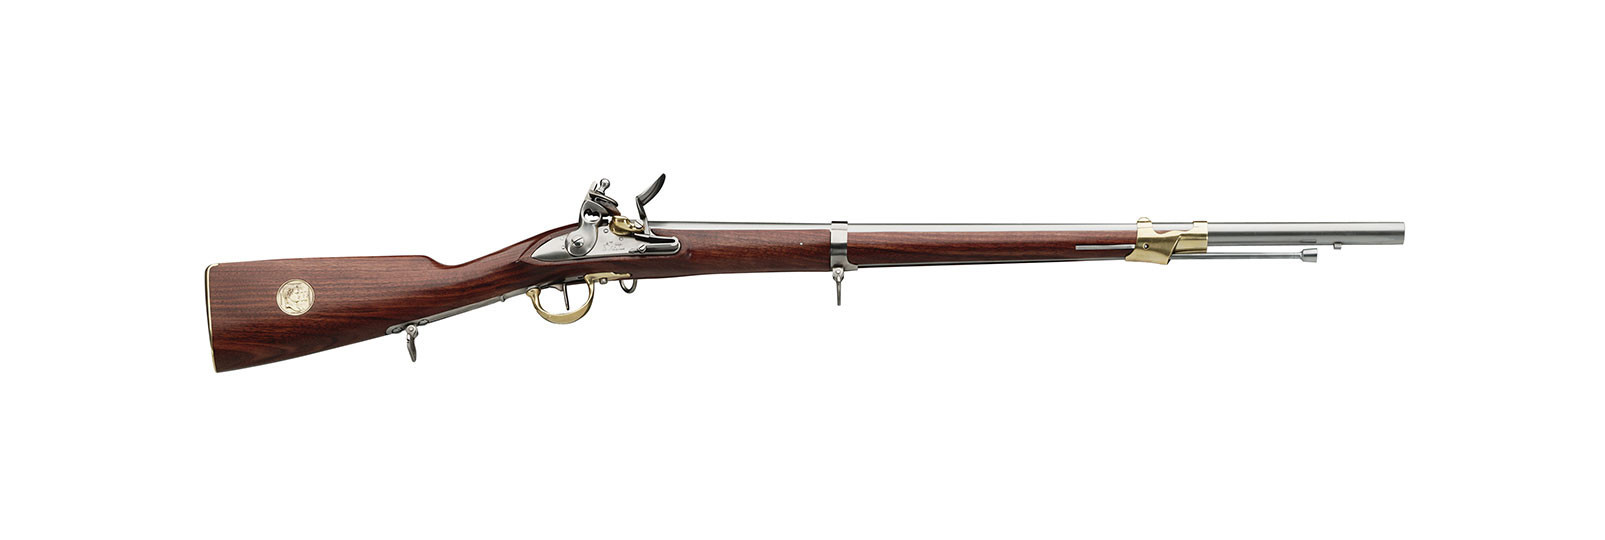 "An IX de cavallerie ""commemorative"" Rifle"